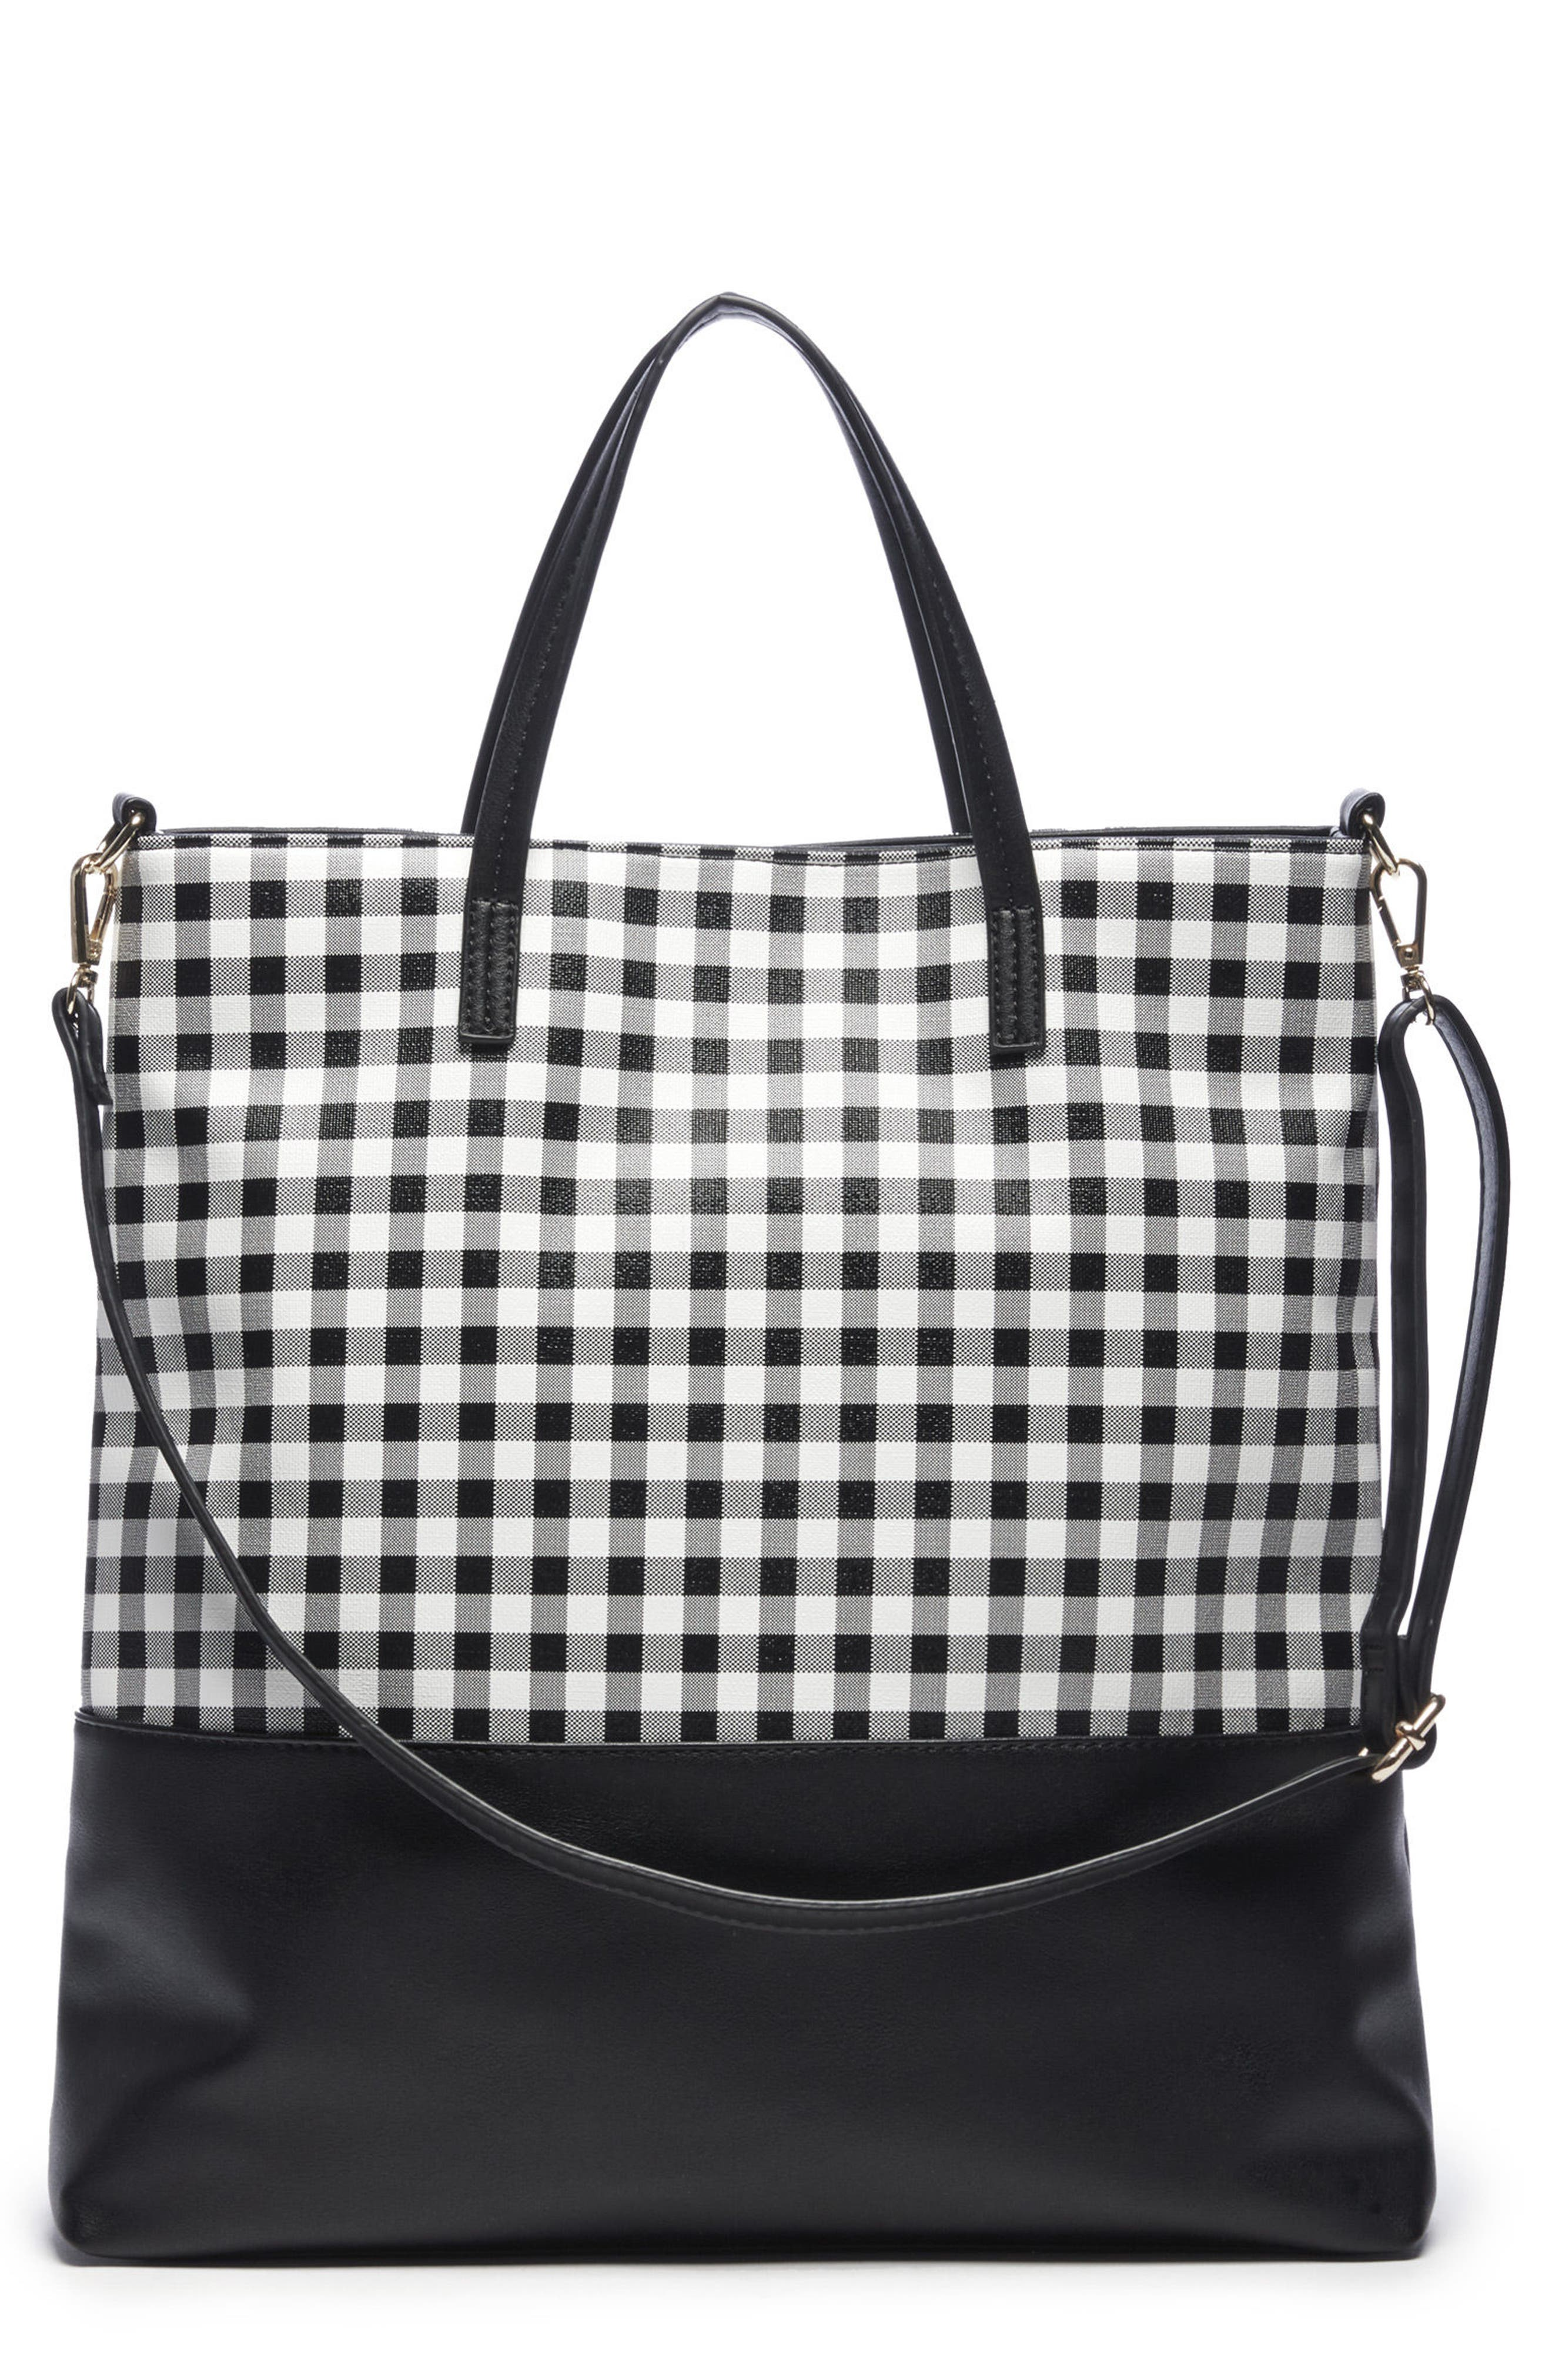 Gingham Faux Leather Tote,                             Main thumbnail 1, color,                             Black/ White